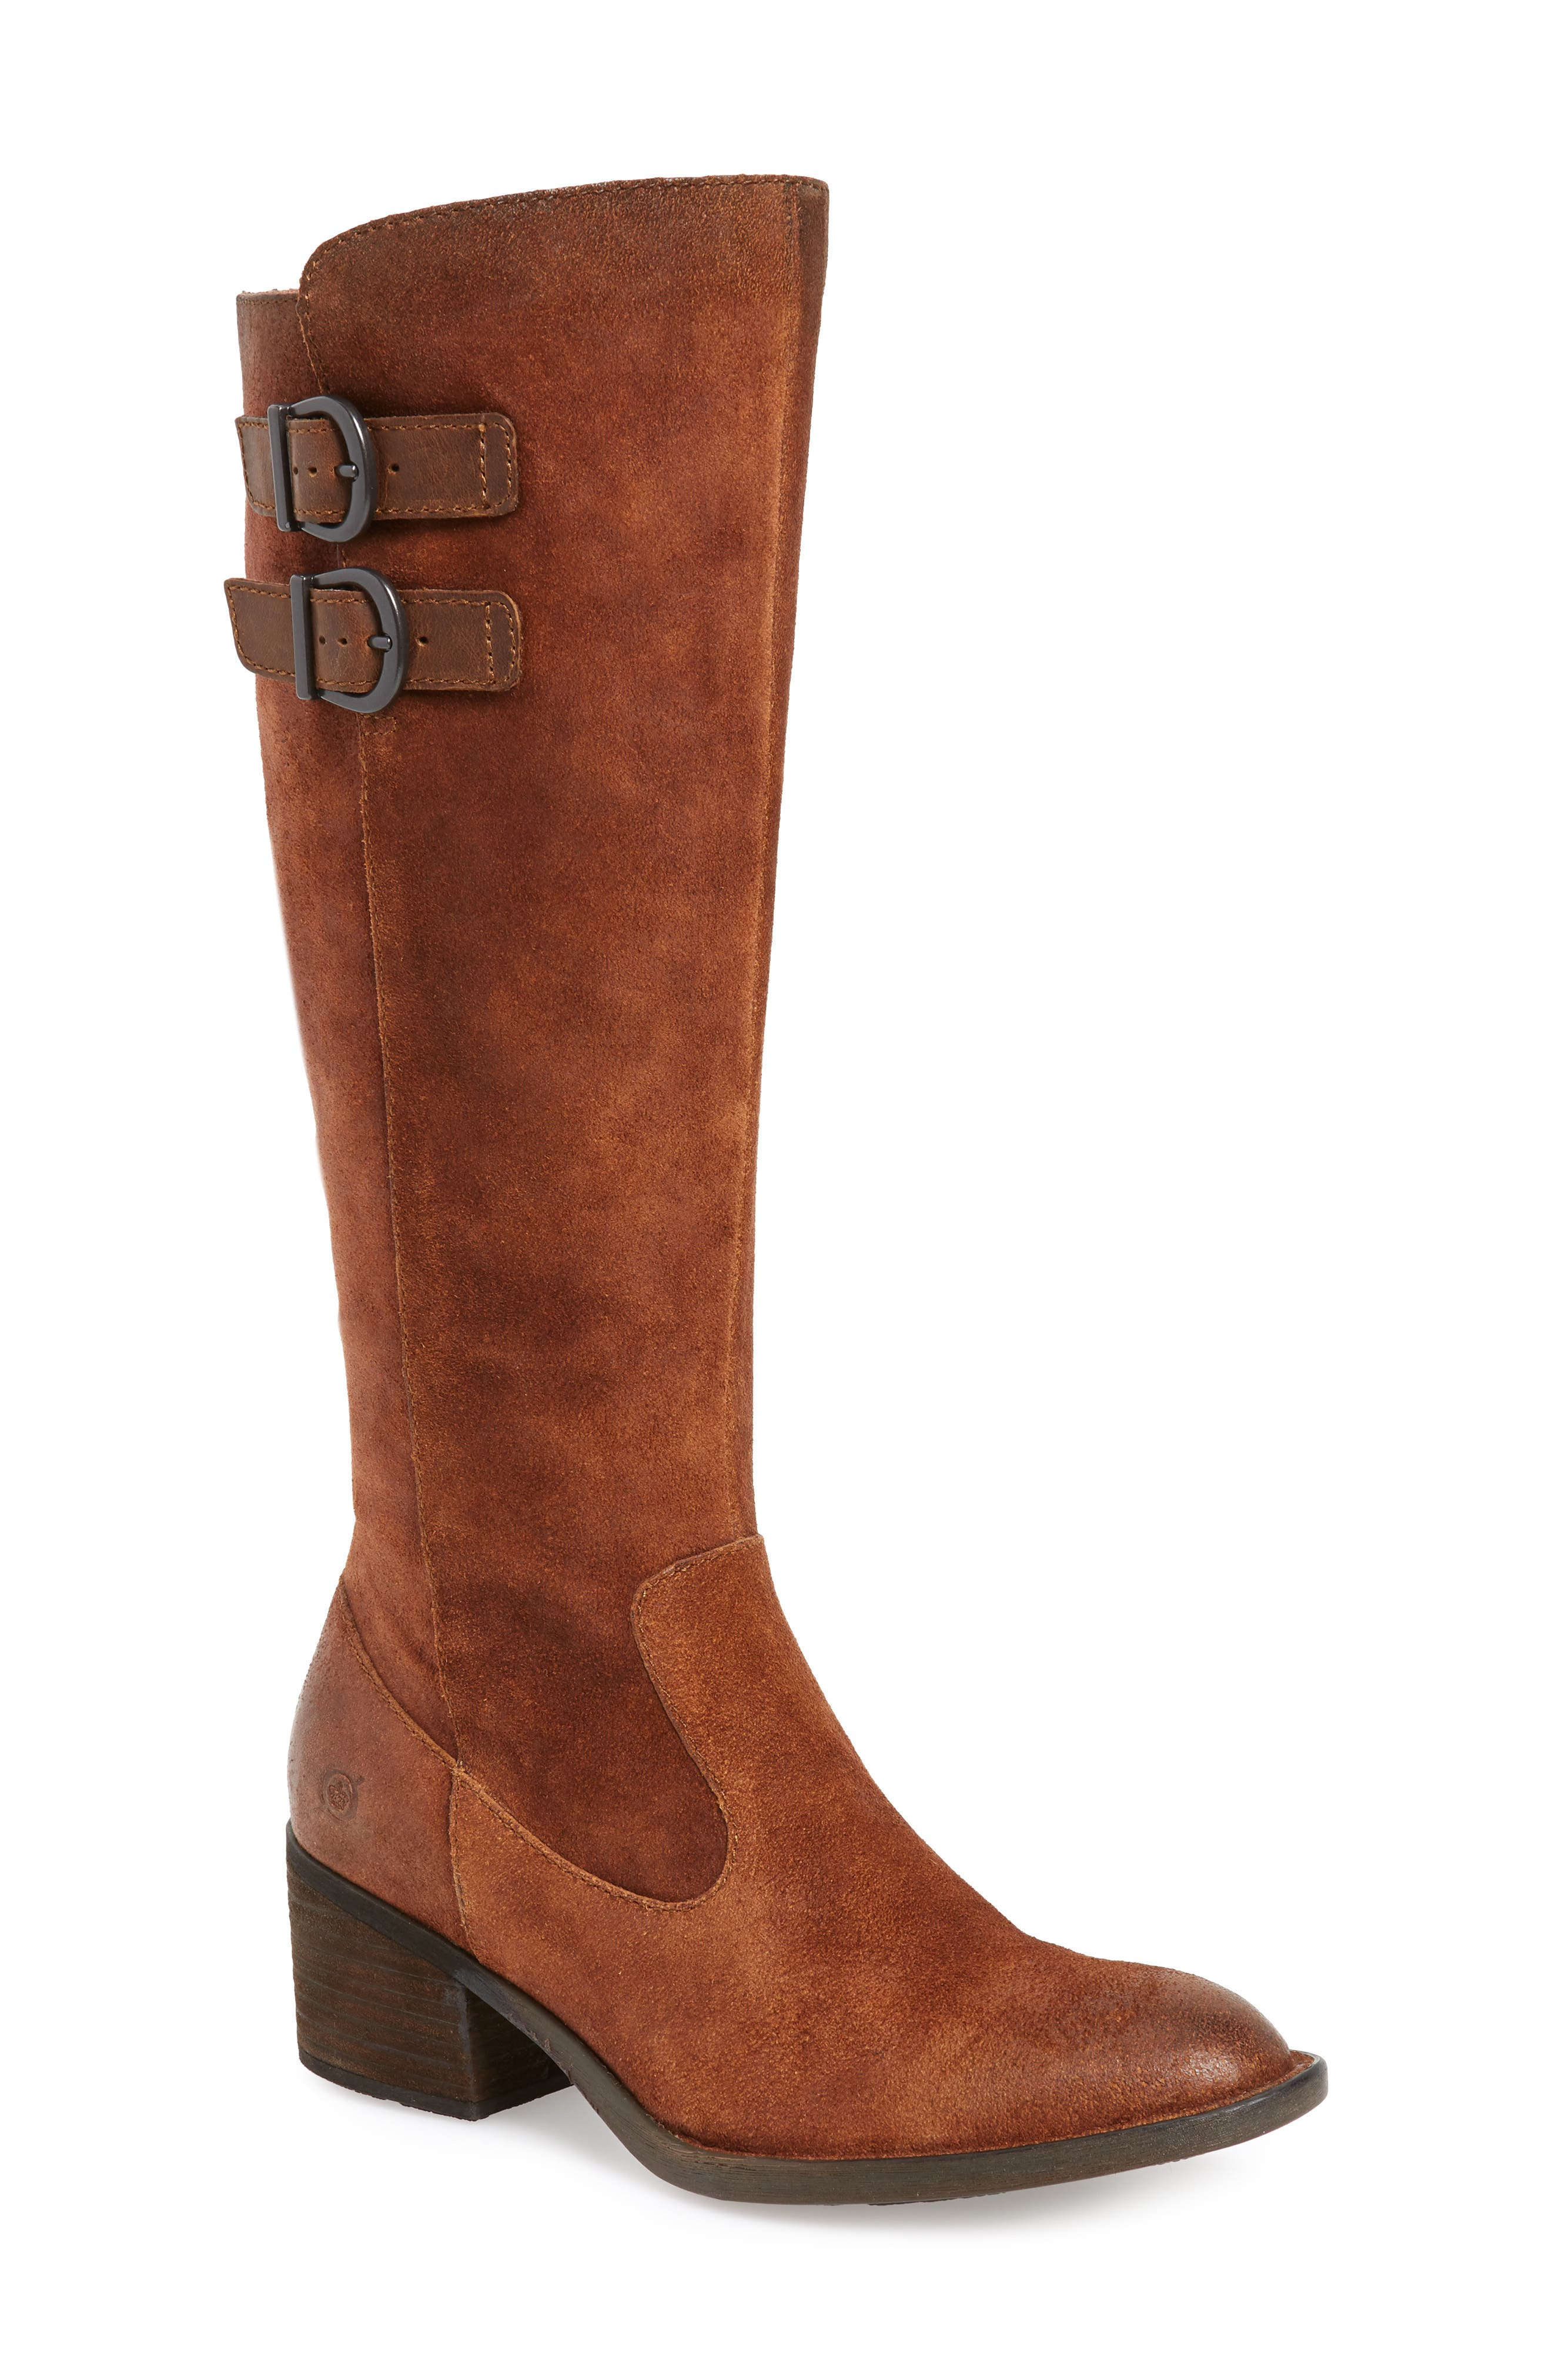 B?rn Basil Boot- Brown